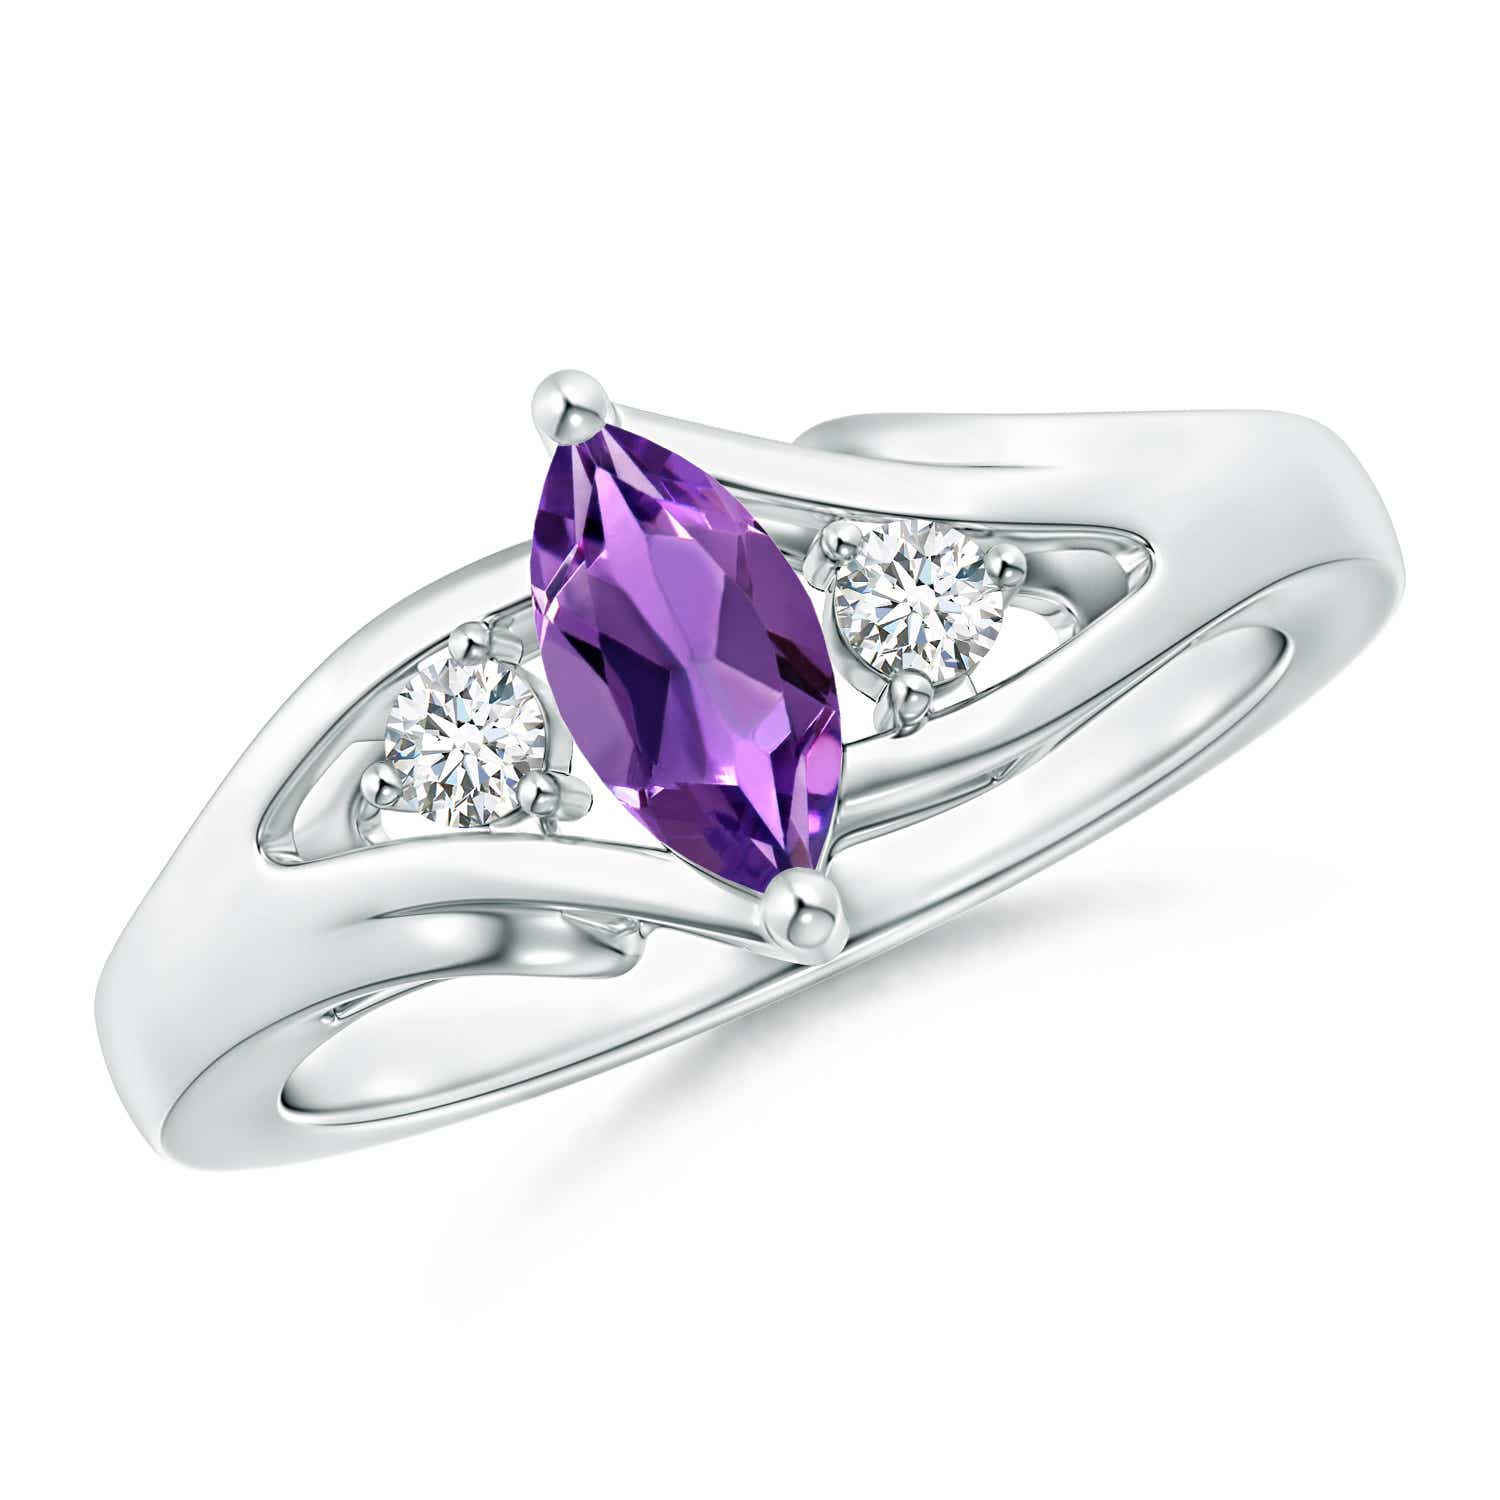 Solitaire Marquise Amethyst Split Shank Ring with Diamond Accents - Angara.com